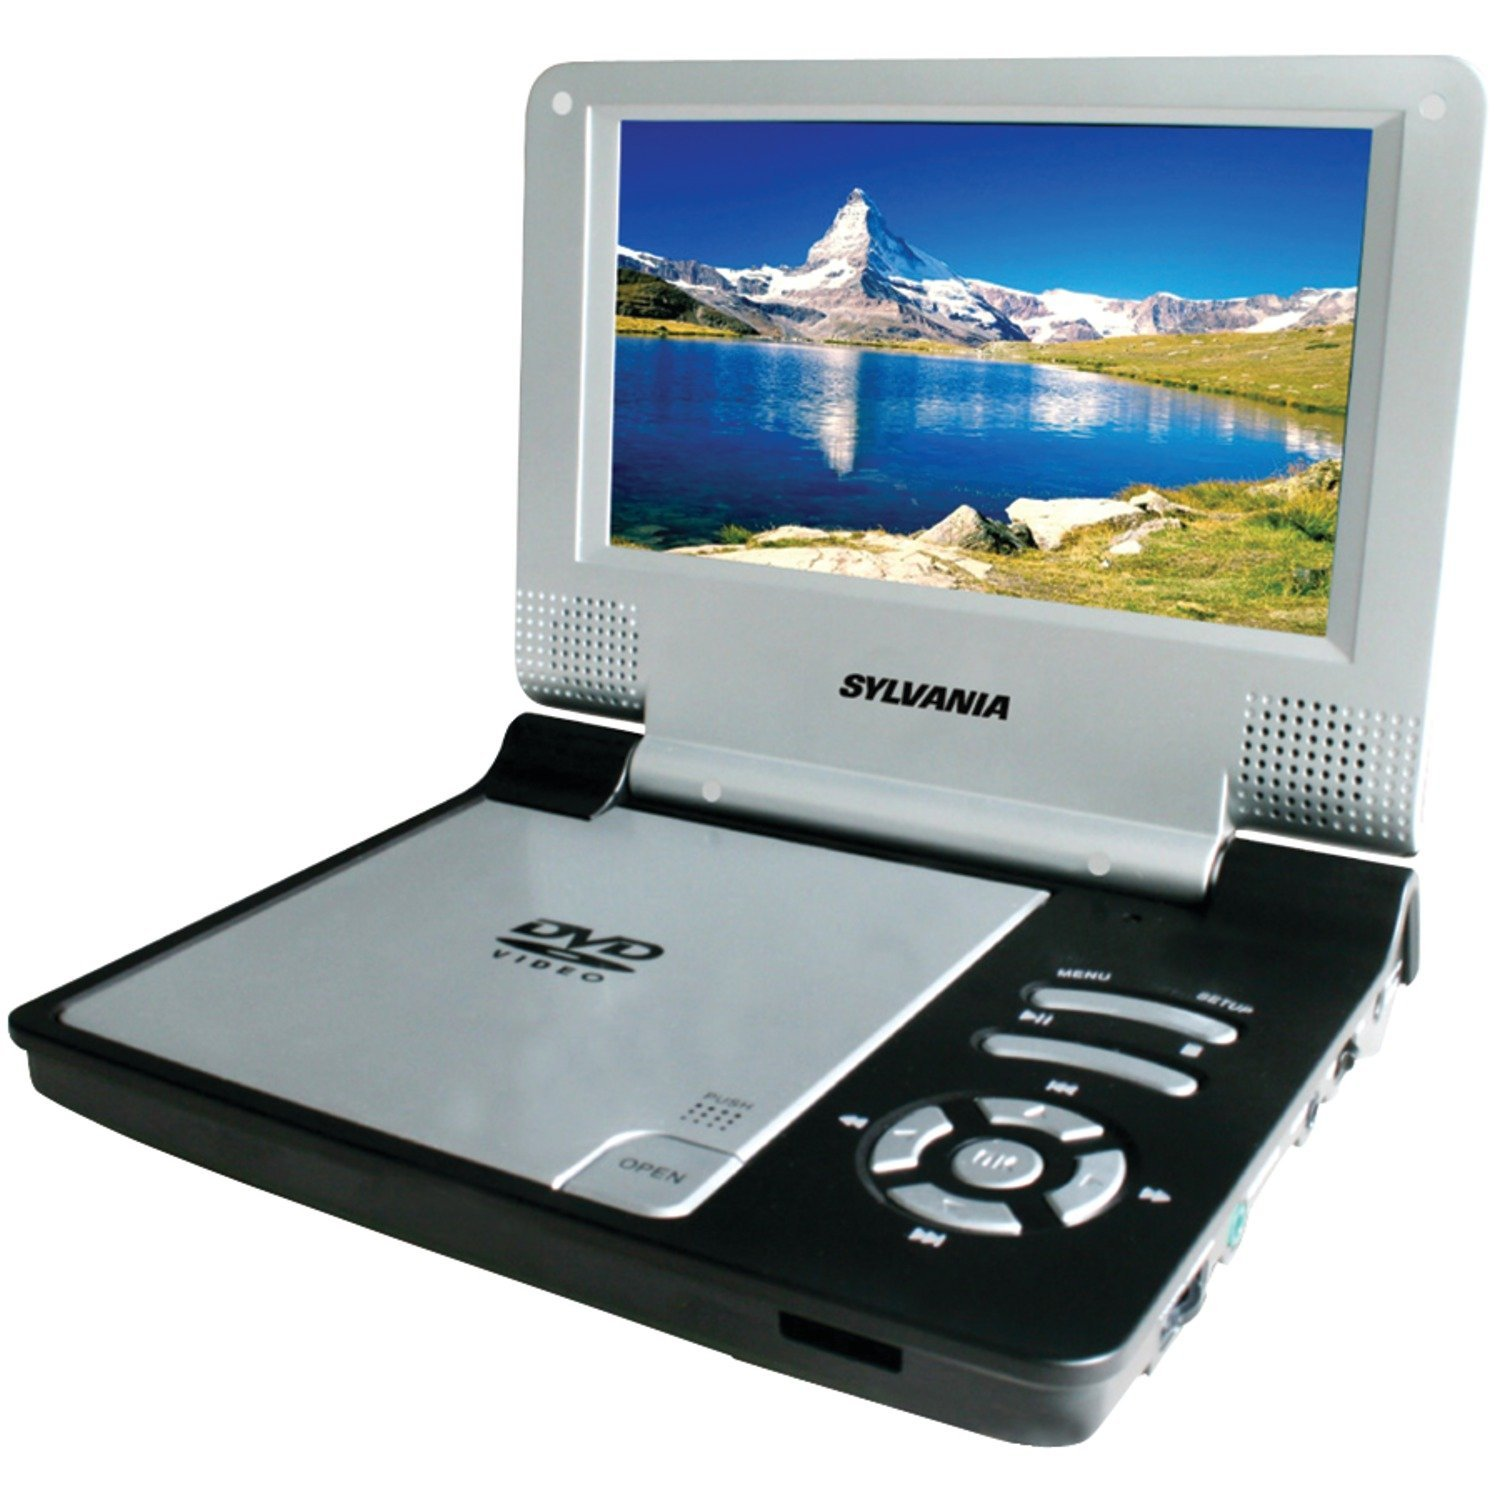 "Sylvania SDVD7014 Portable DVD Player - 7"" Display - Black (sdvd7014black)"